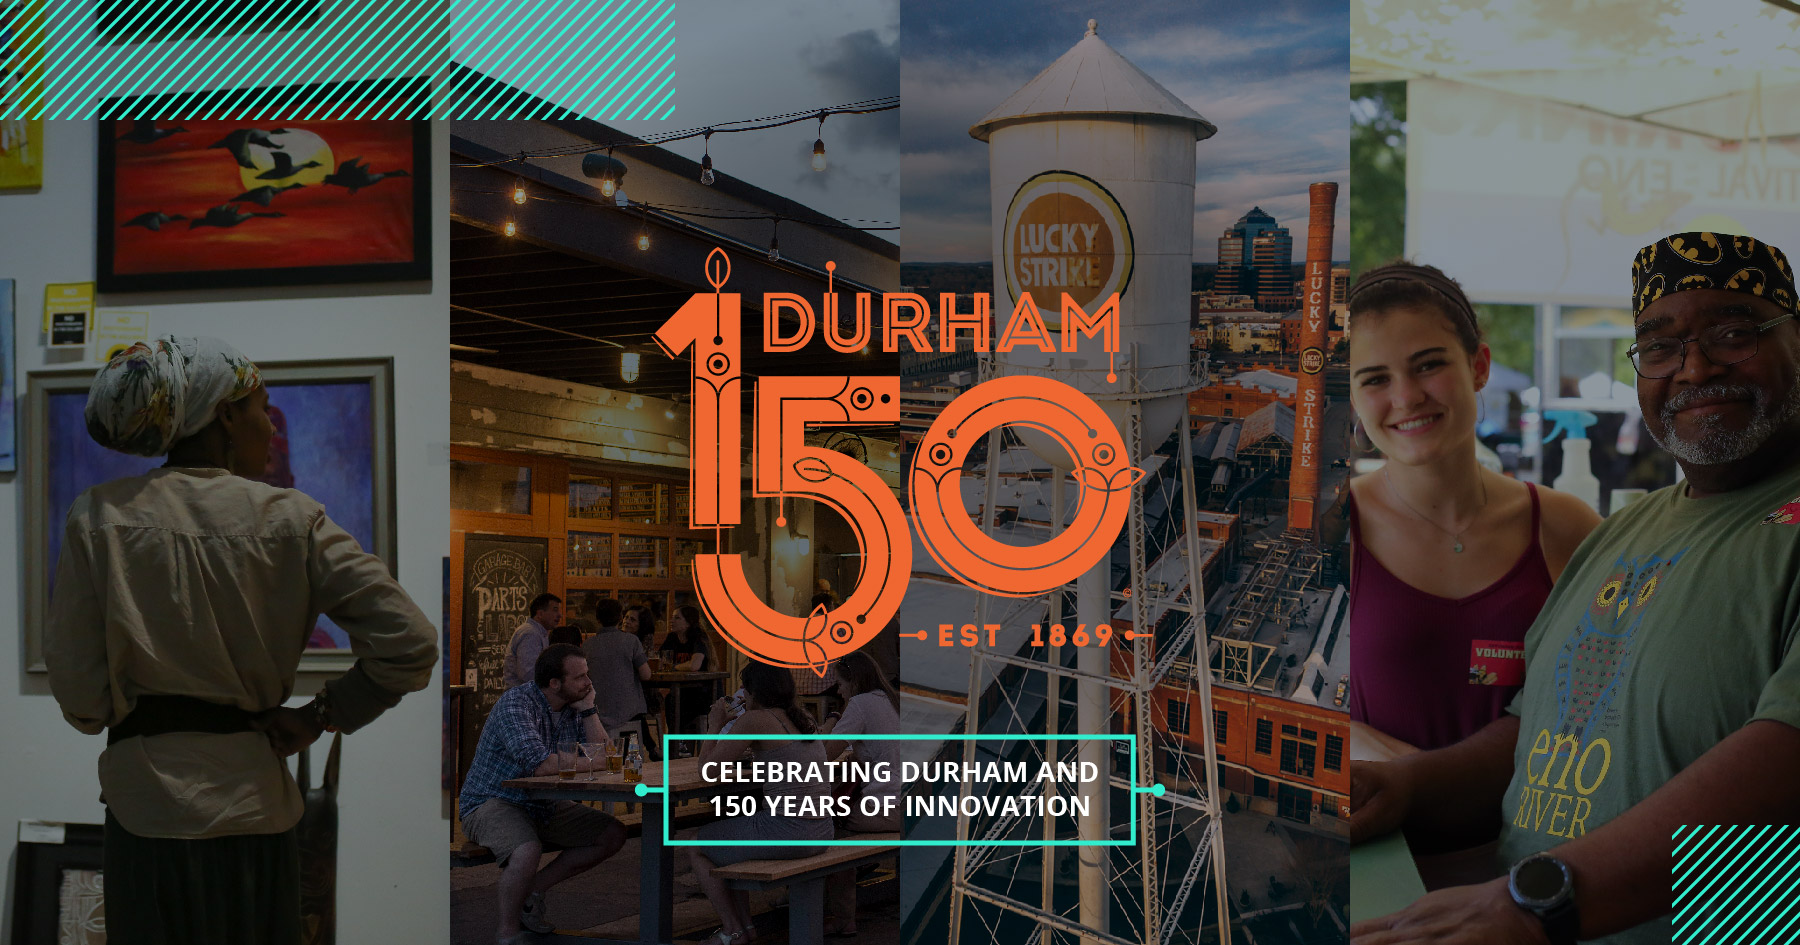 Durham 150 - Celebrating Durham and 150 Years of Innovation